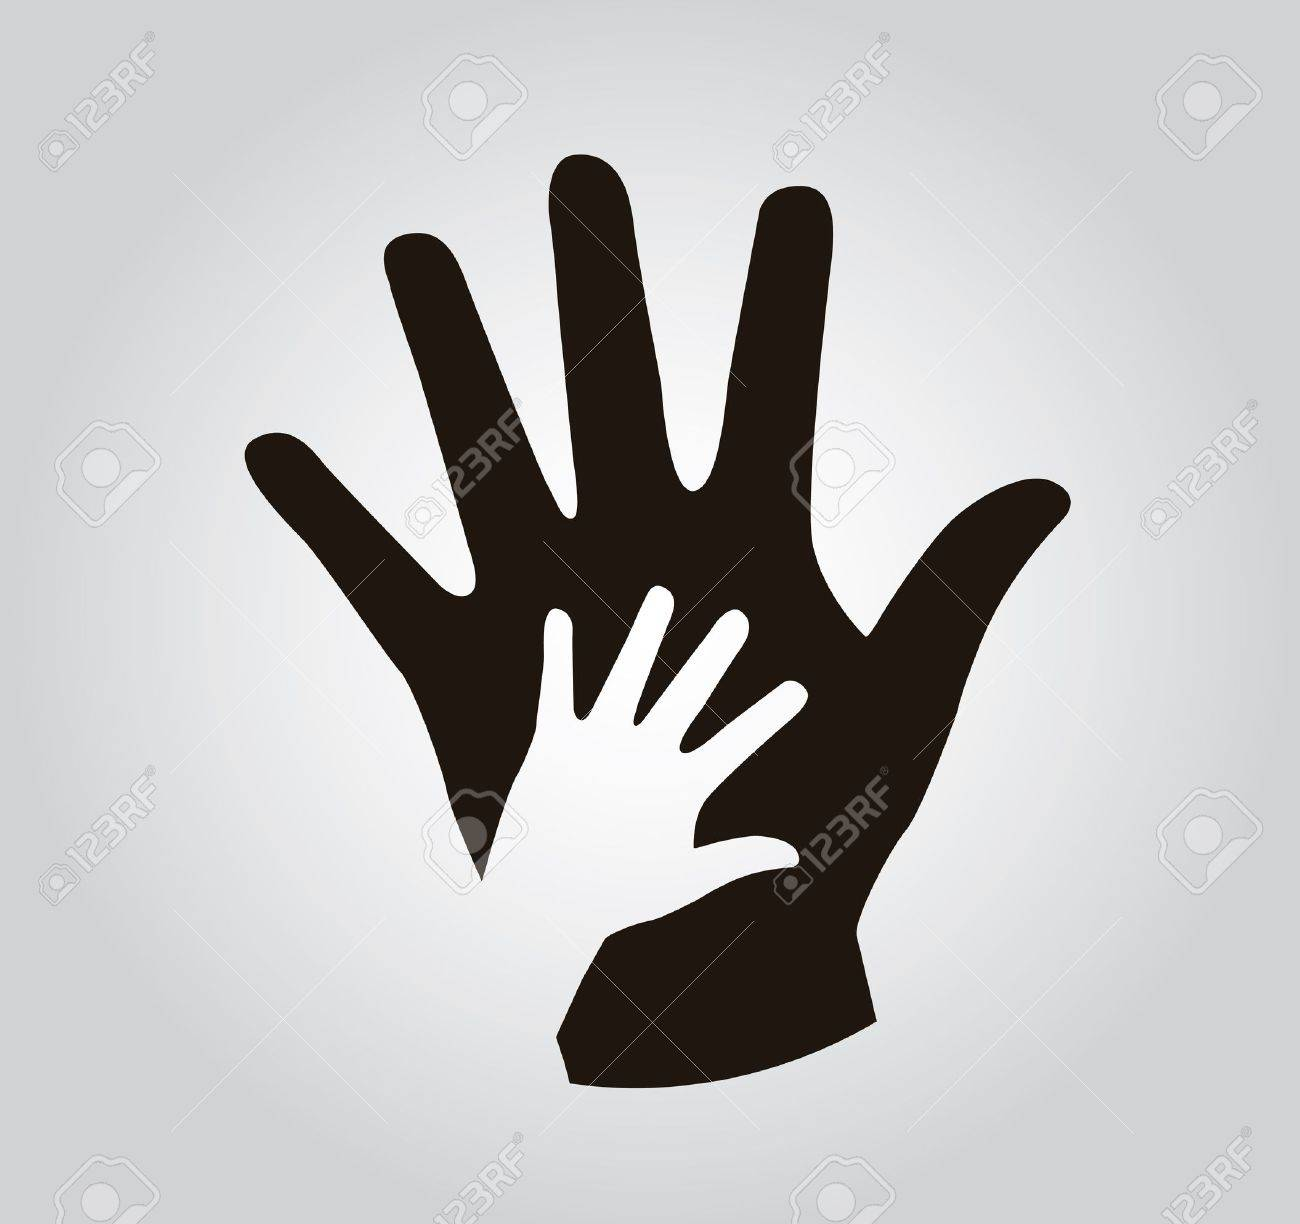 hands silhouette over gray background illustration - 19773025